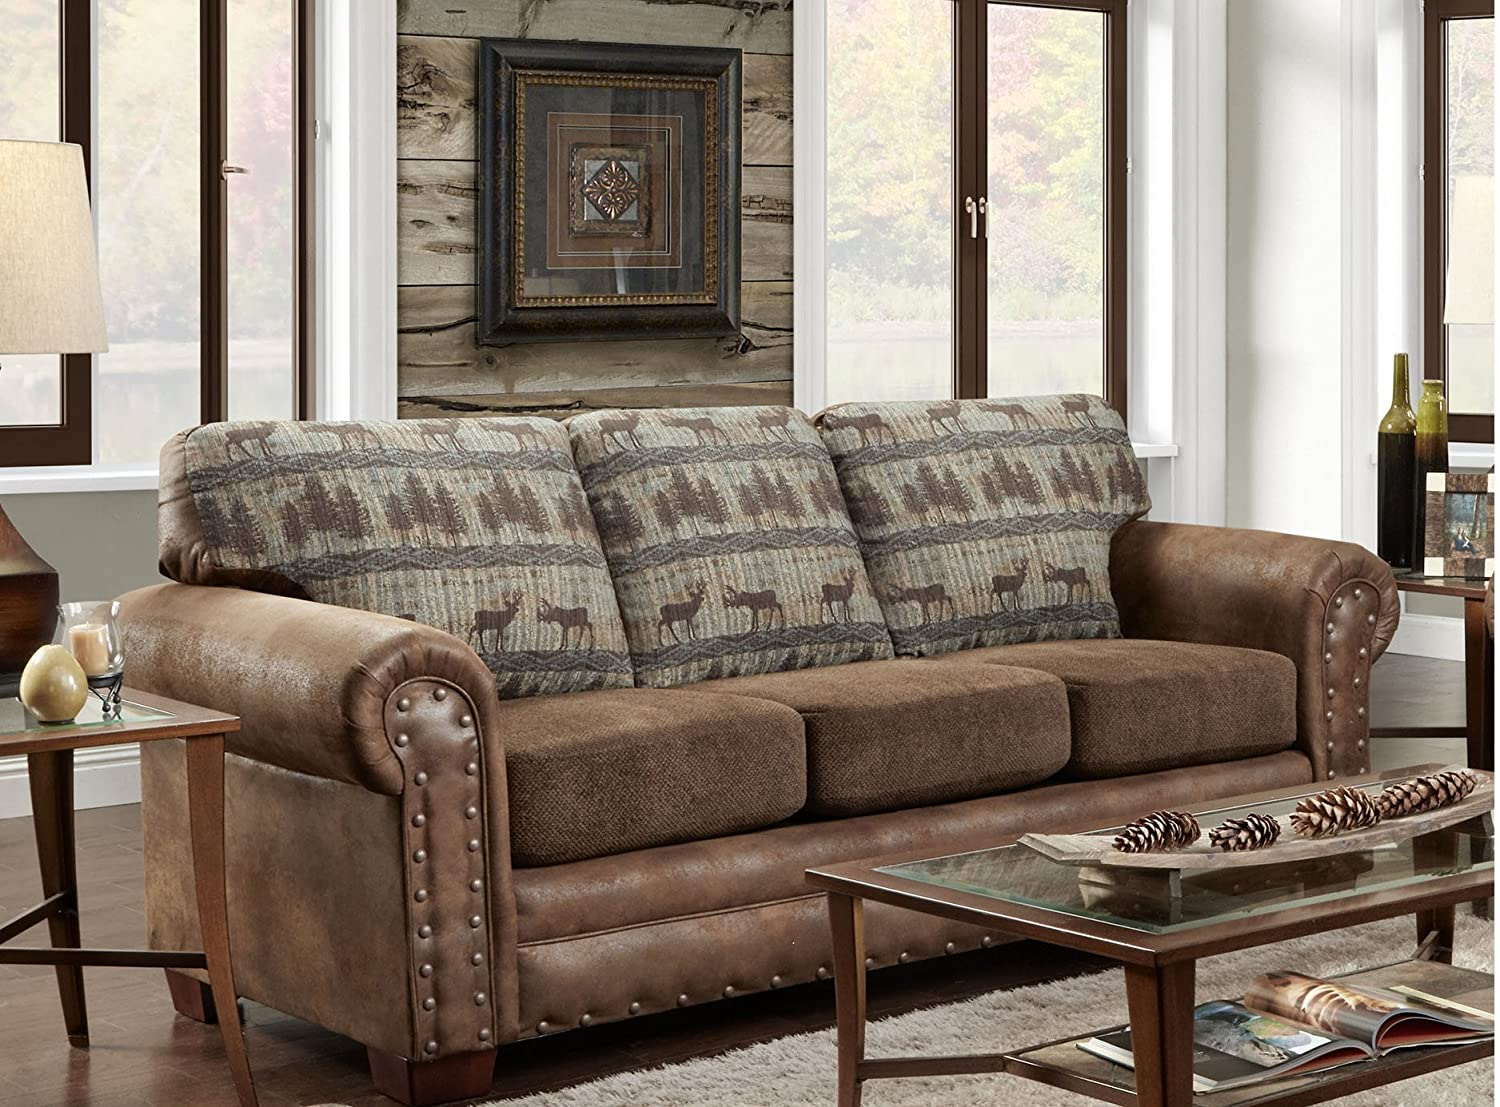 Amazon Com American Furniture Classics Sofa In Deer Teal Lodge